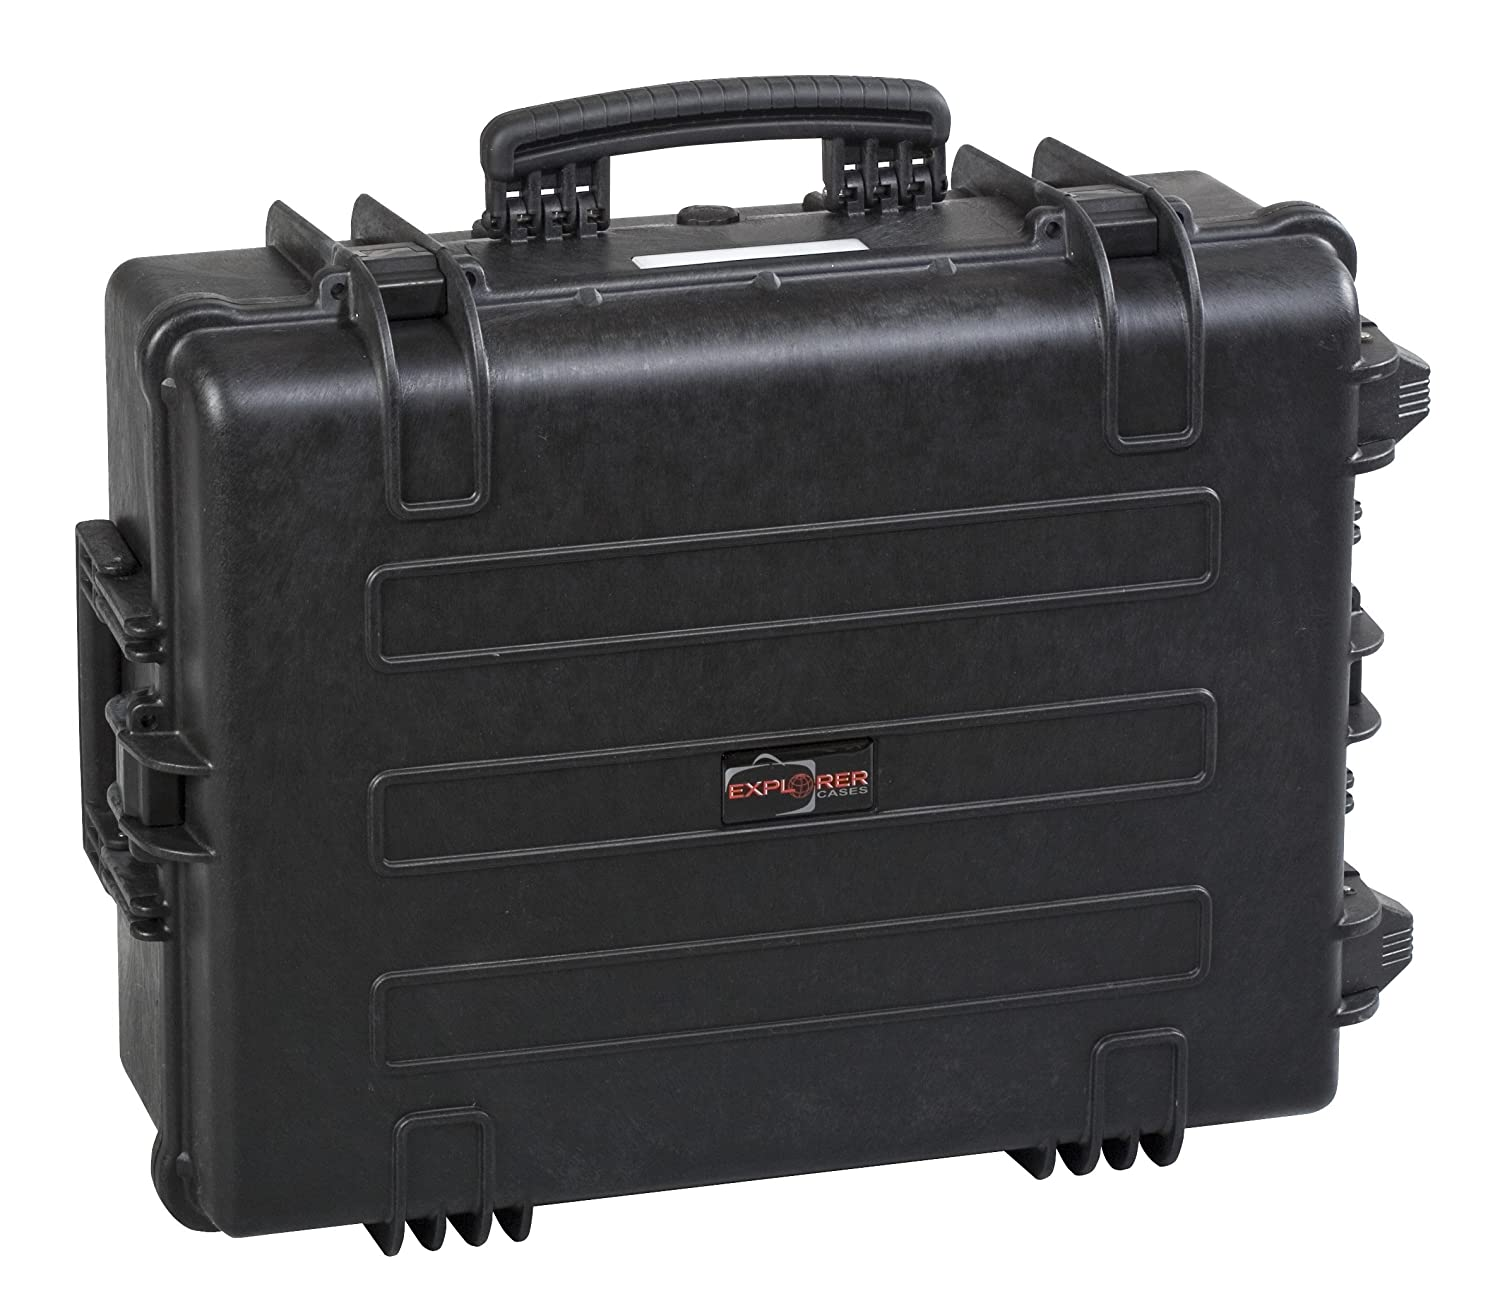 Explorer Cases 5823bph防水ケースwith Padded Dividerシステム& Convoluted Foam蓋、ブラック   B06X9YGH5L